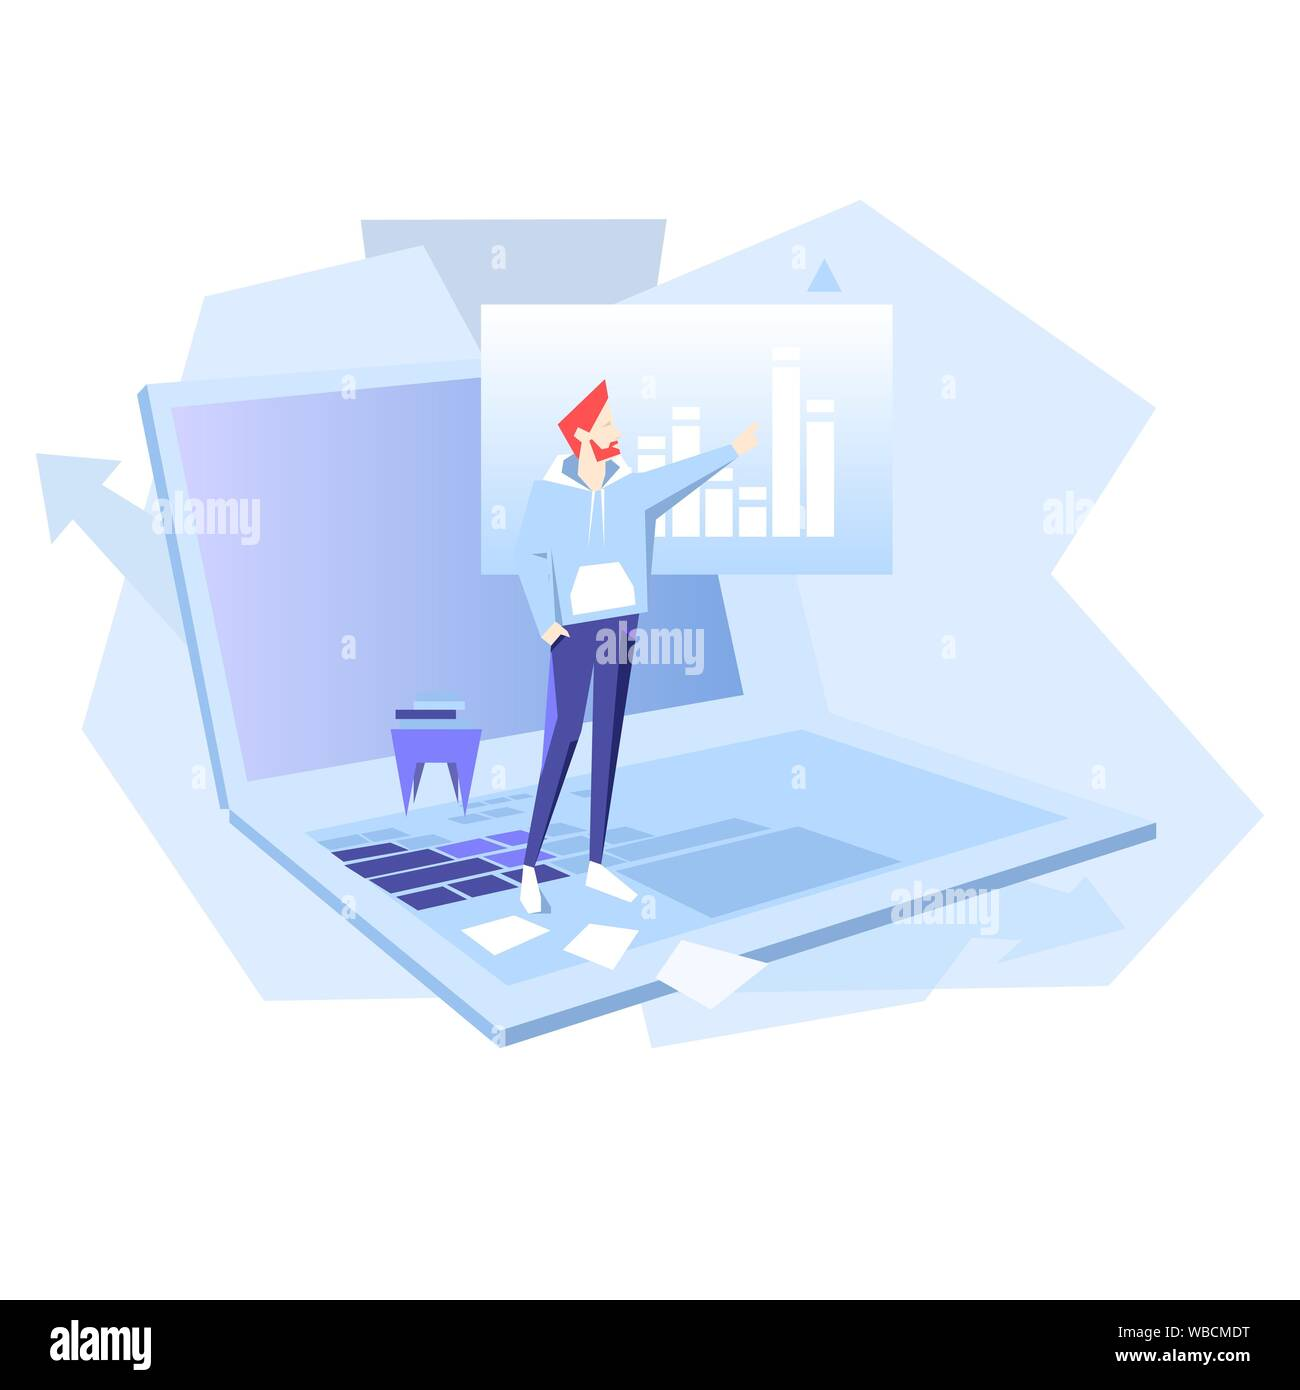 Teamwork business vector flat illustration. Man point on chart. Banner logo template for the website or app infographic. Stock Vector